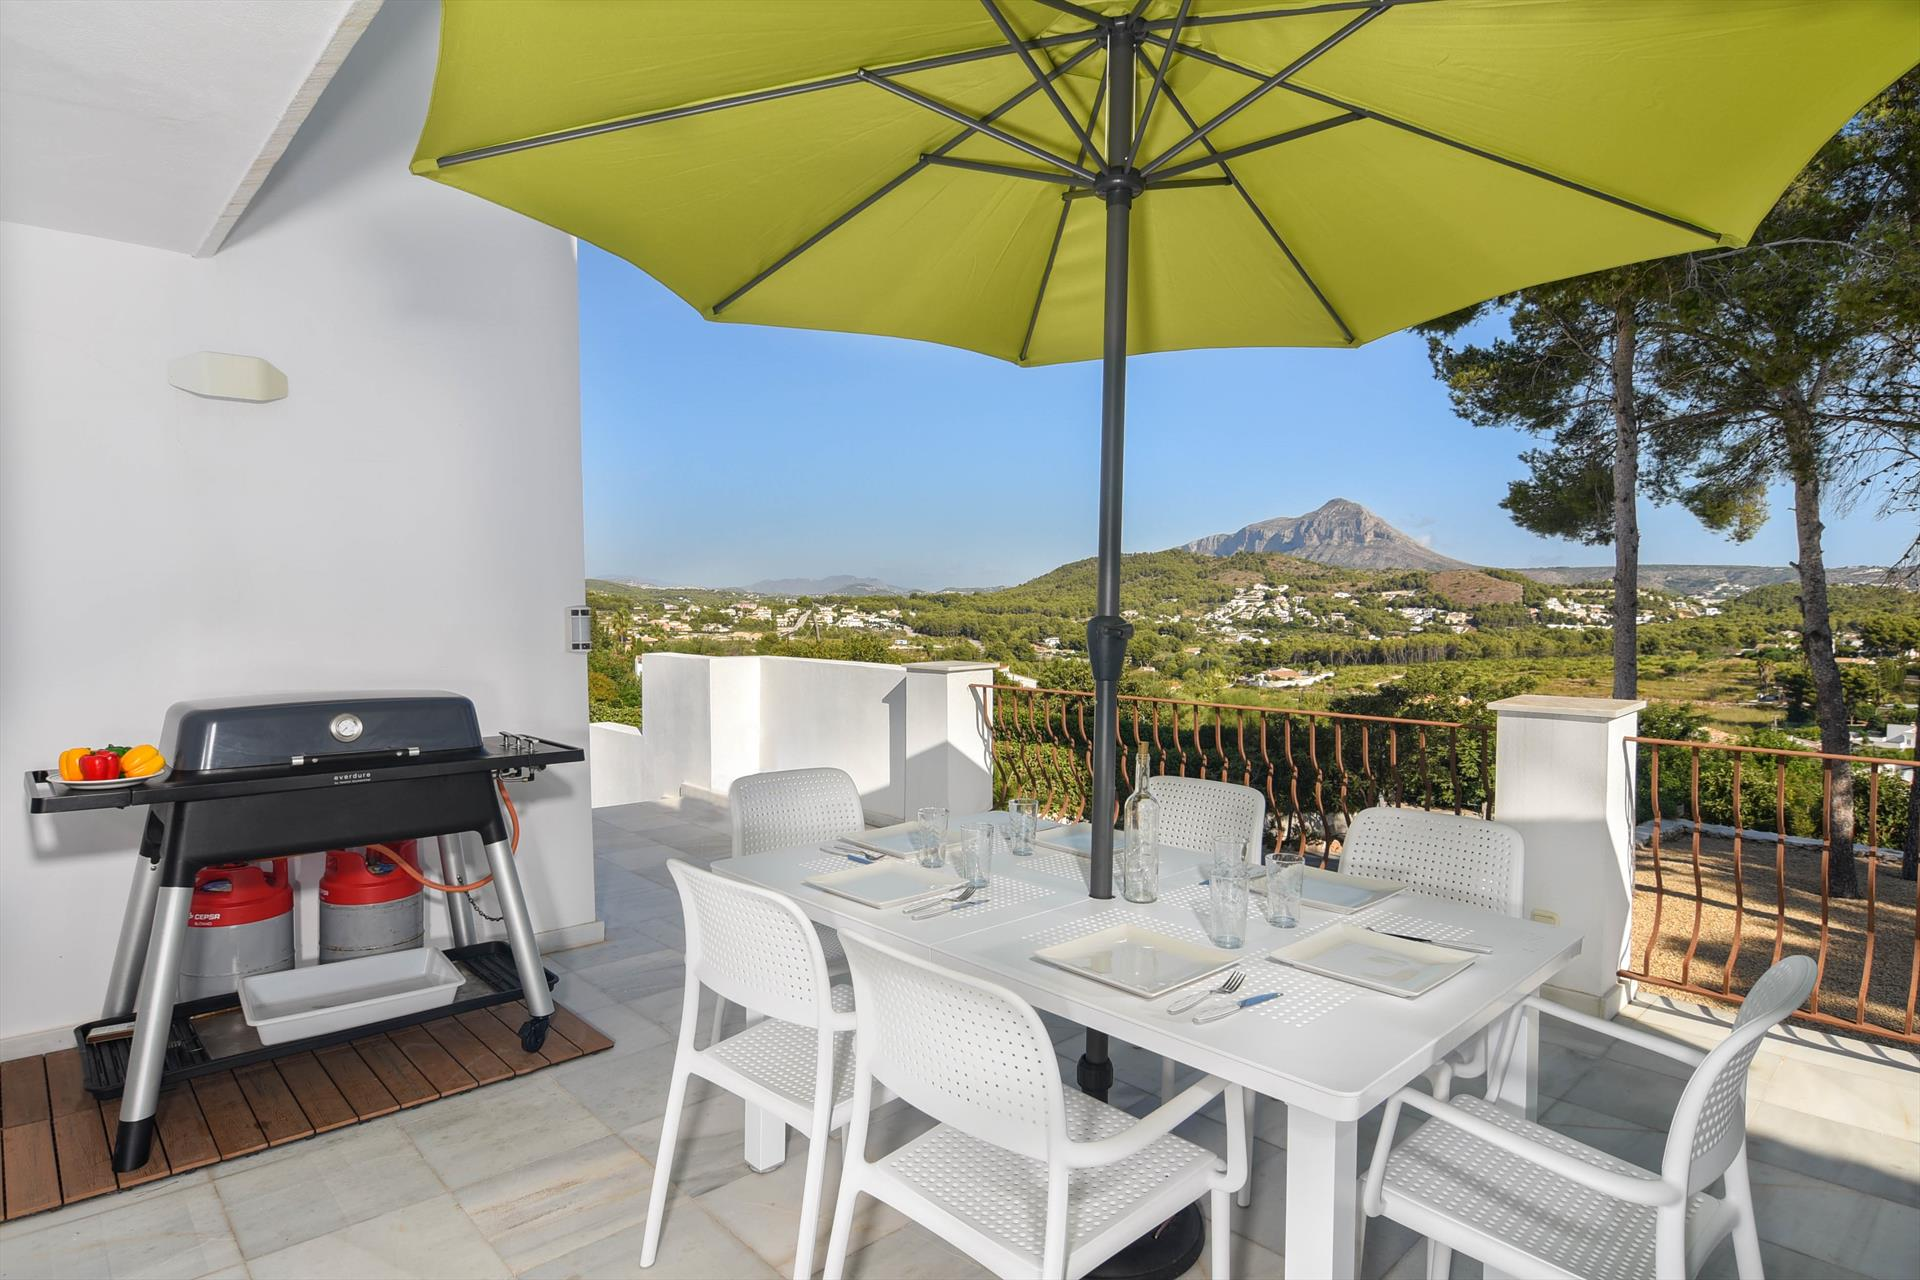 Kilima 6 pax, Wonderful and comfortable villa in Javea, on the Costa Blanca, Spain  with private pool for 6 persons...